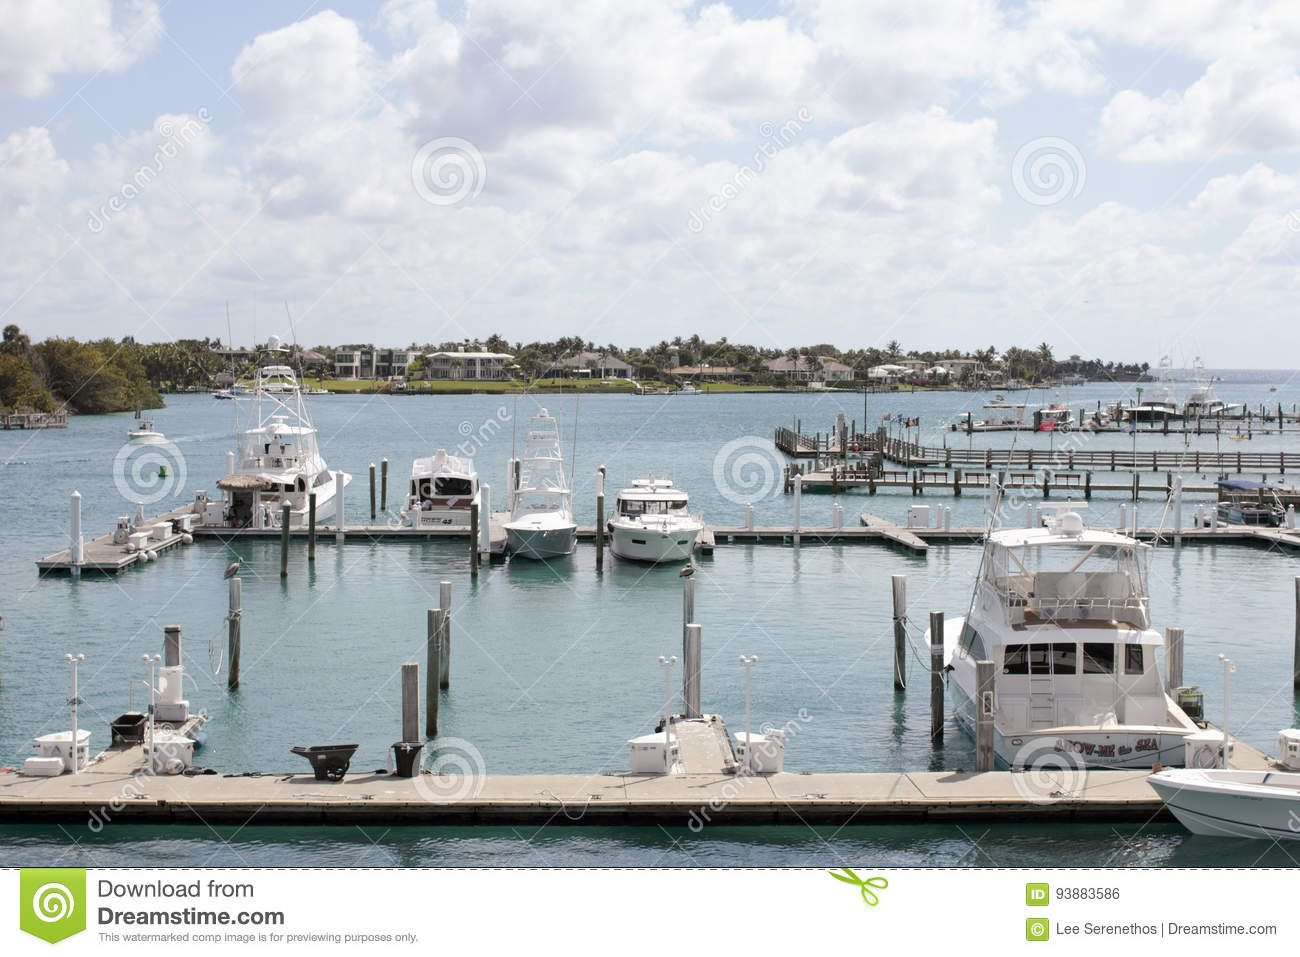 Boats Docked and Traveling in Jupiter Inlet